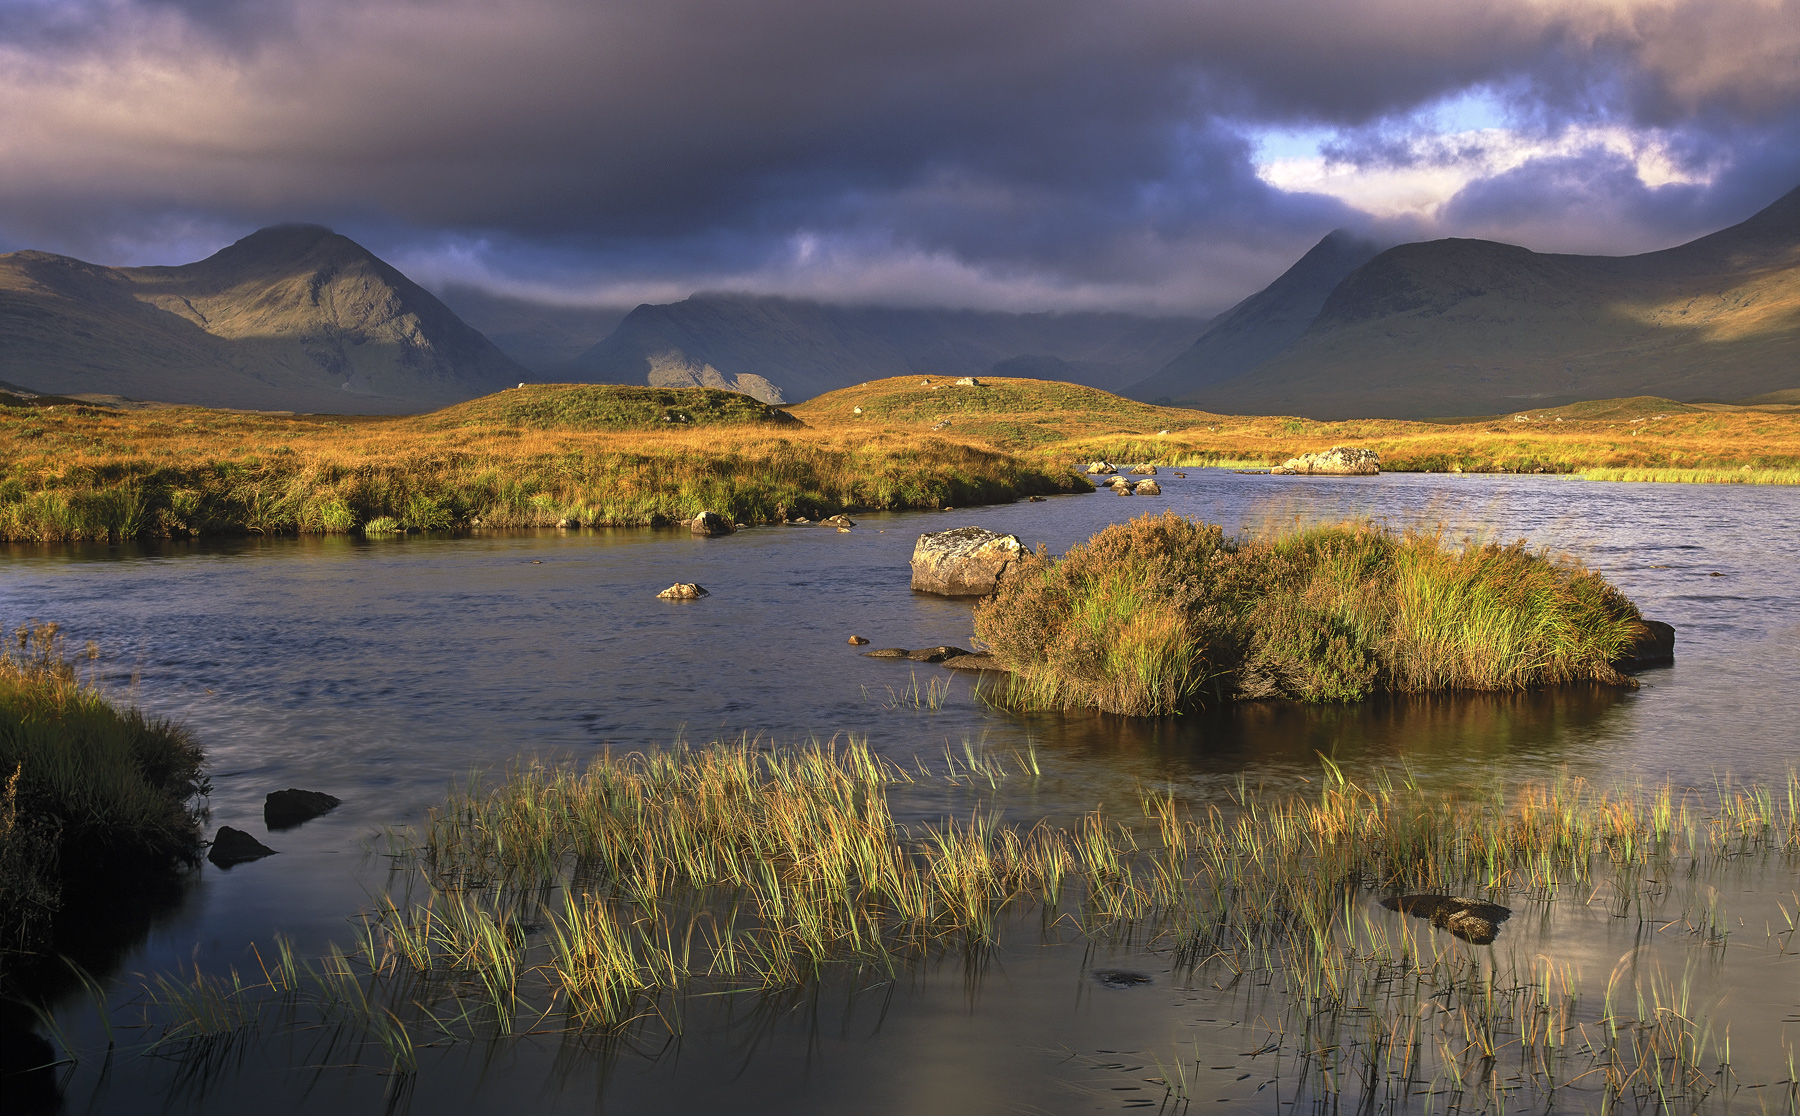 Rannoch moor a vast expanse of waterlogged moorland backed by mountains has the capacity to produce some of the most astonishing...